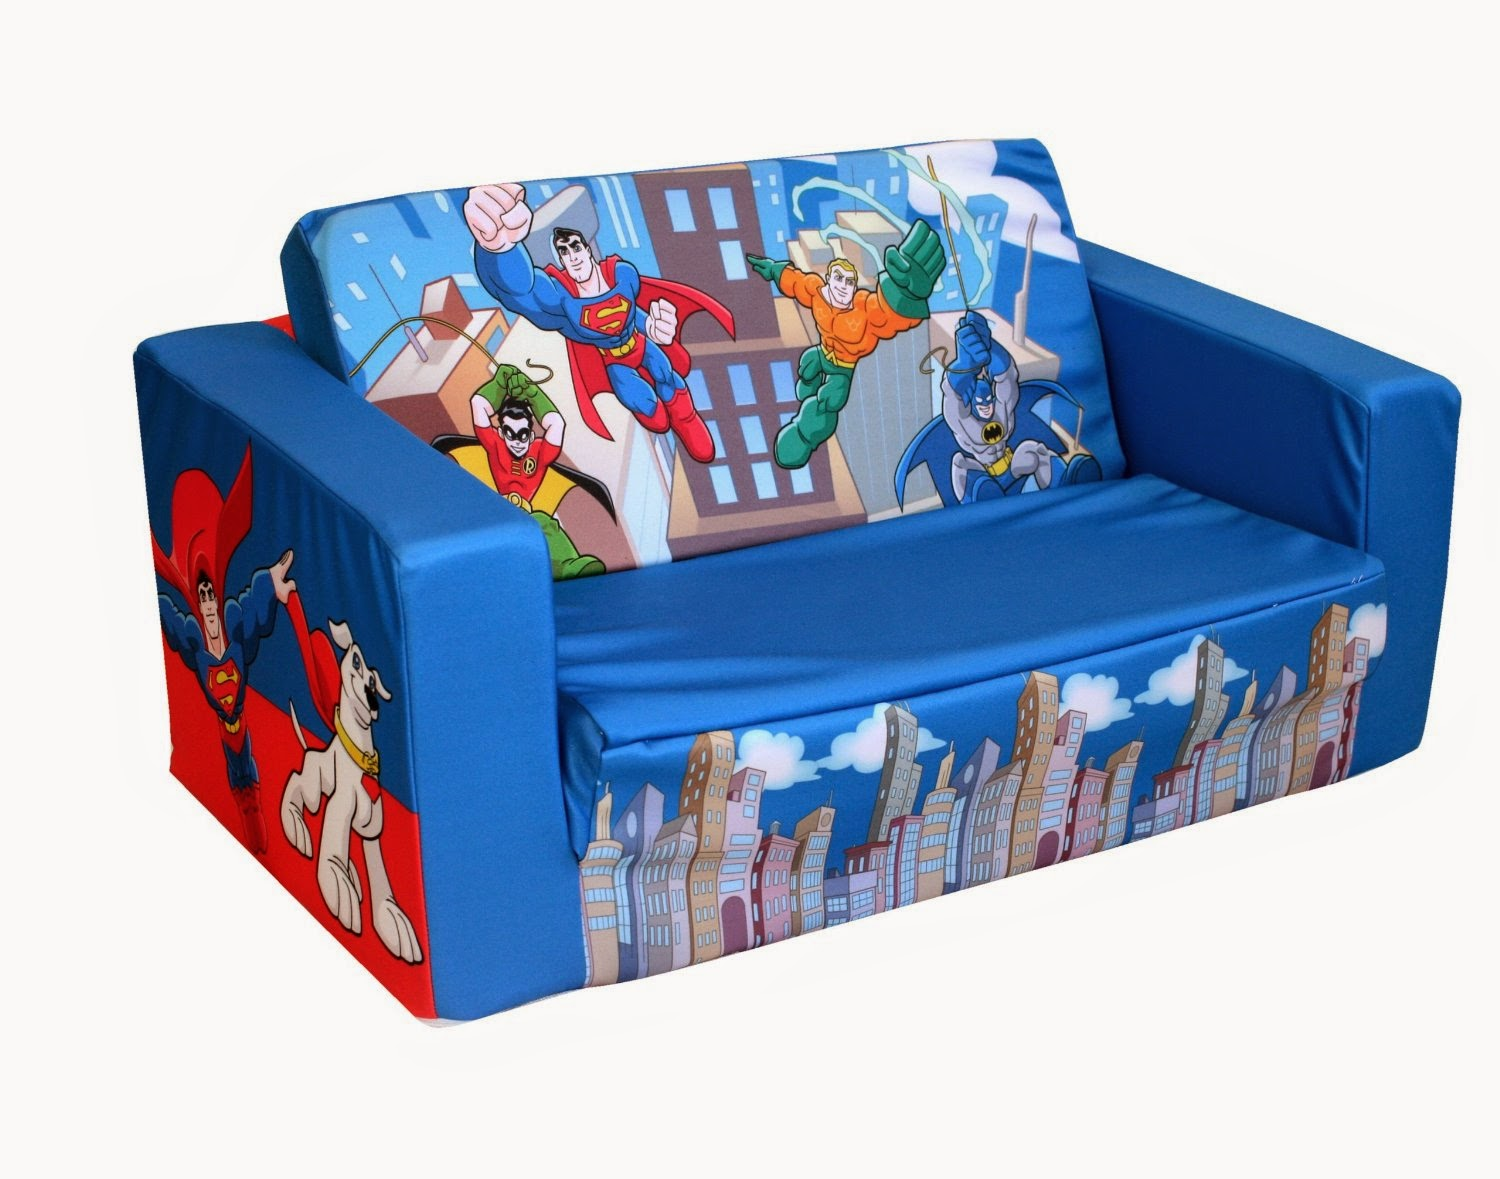 kids couch mini couch for kids : blue mini couch for kids from kids-couch.blogspot.com size 1500 x 1179 jpeg 199kB